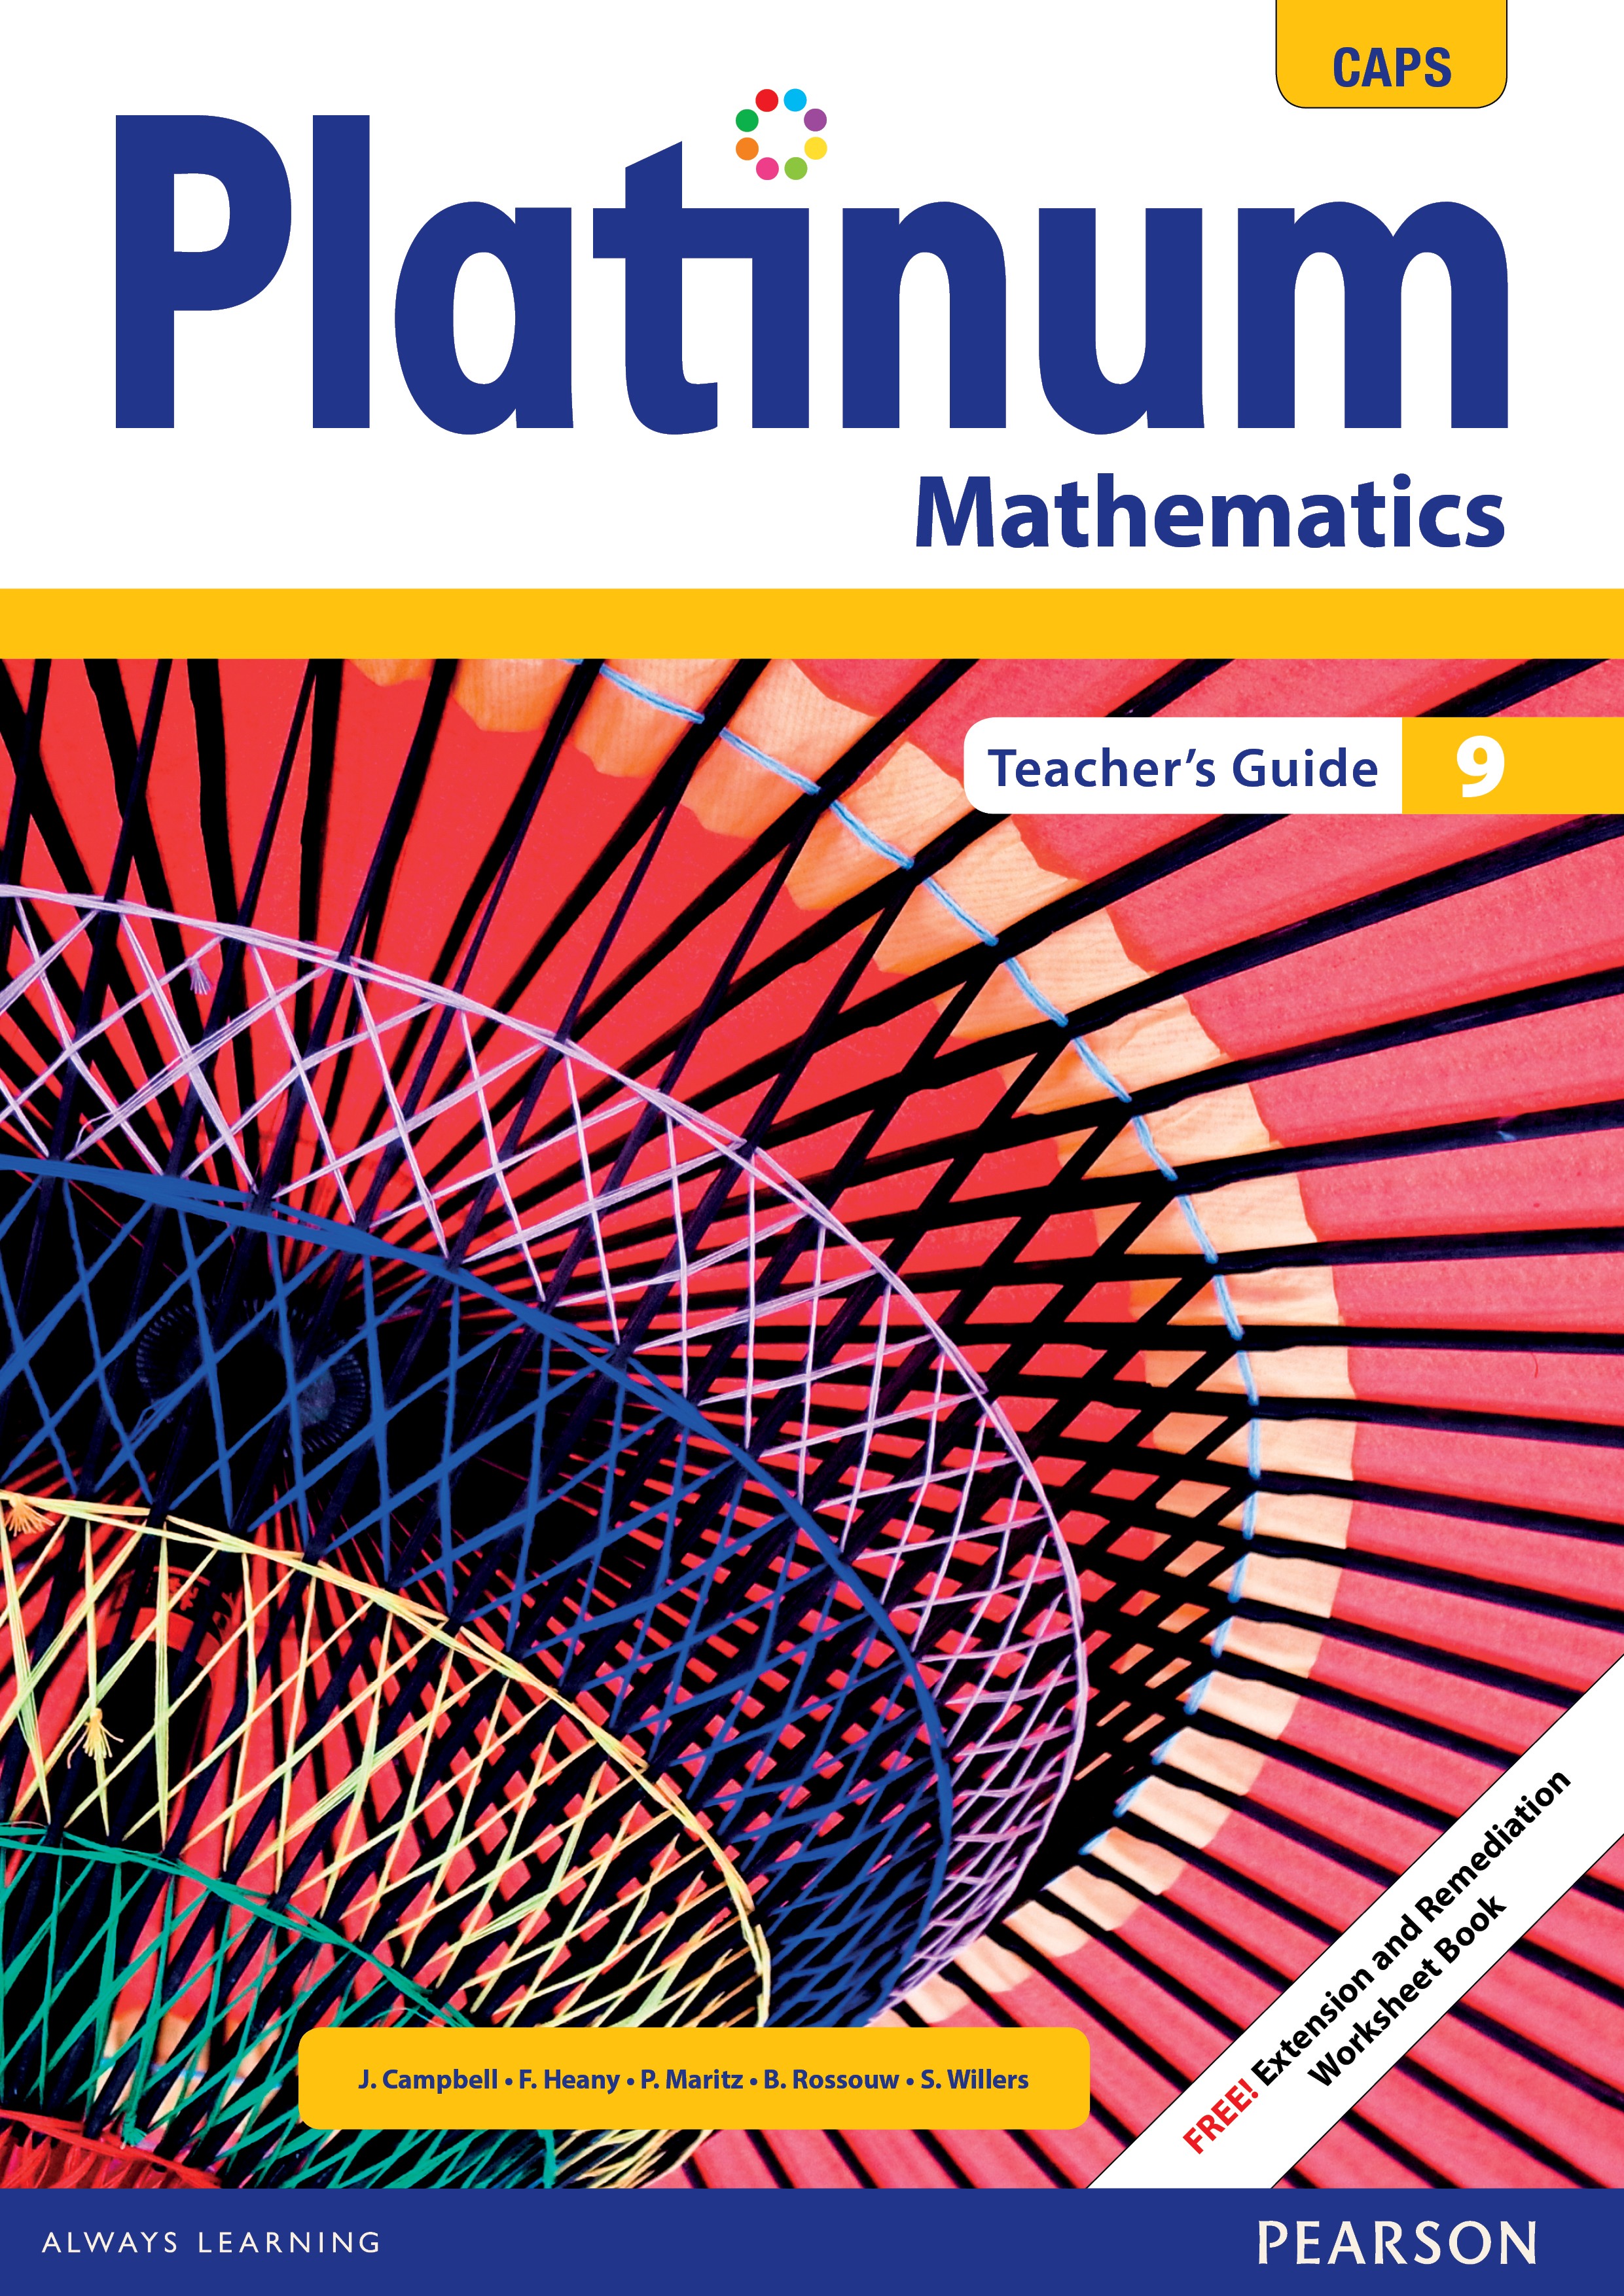 Platinum Mathematics Grade 9 Teacher's Guide ePDF (perpetual licence)